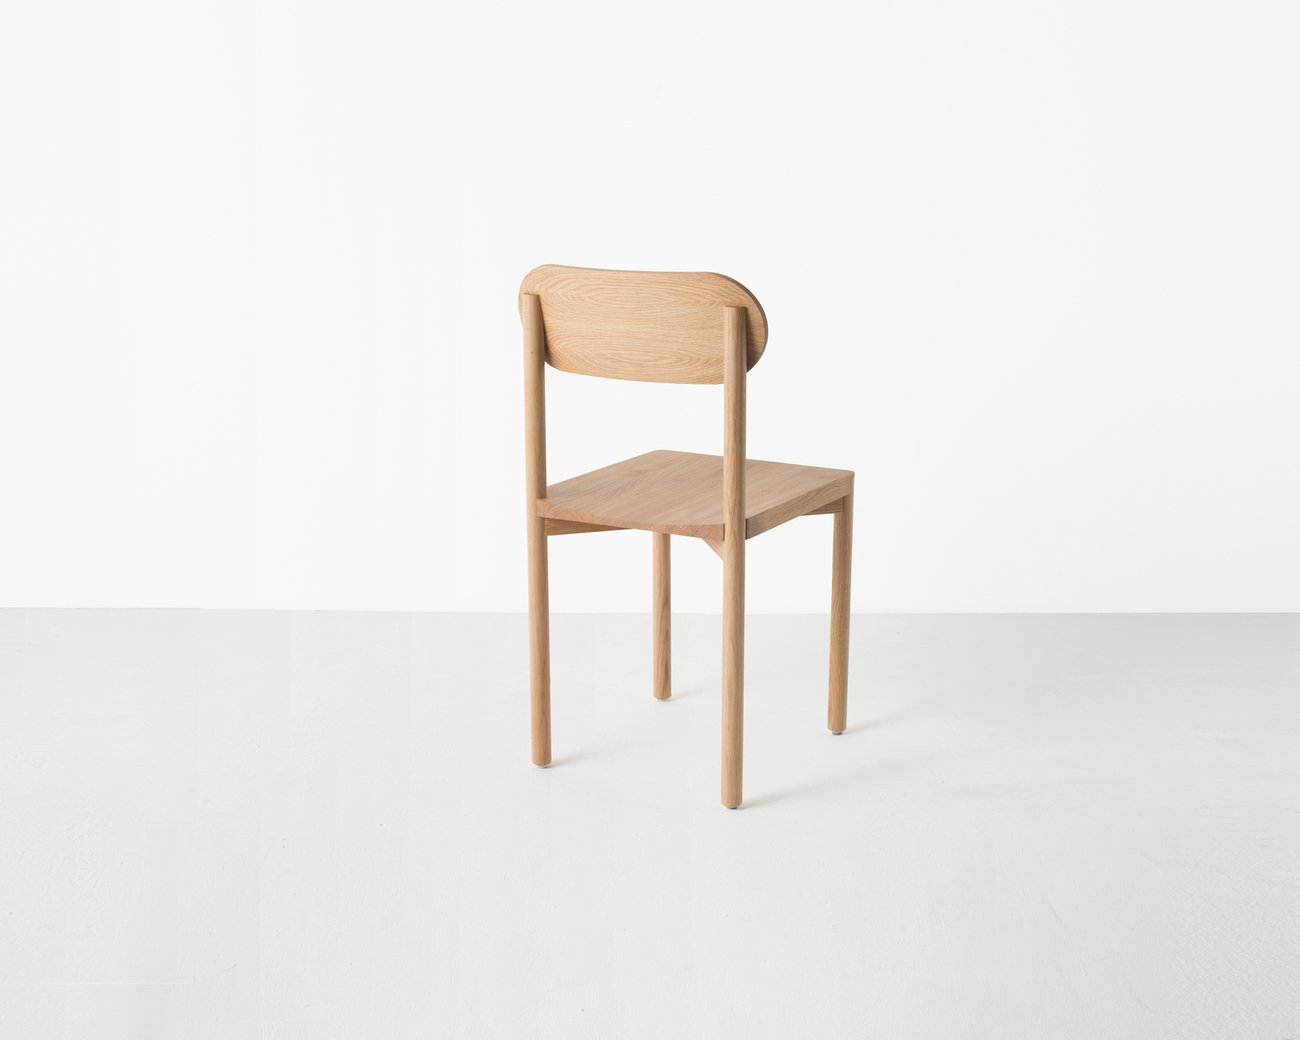 Image: uploads/2017_03/Resident-studio-chair-by-Jason-Whiteley-8.jpg